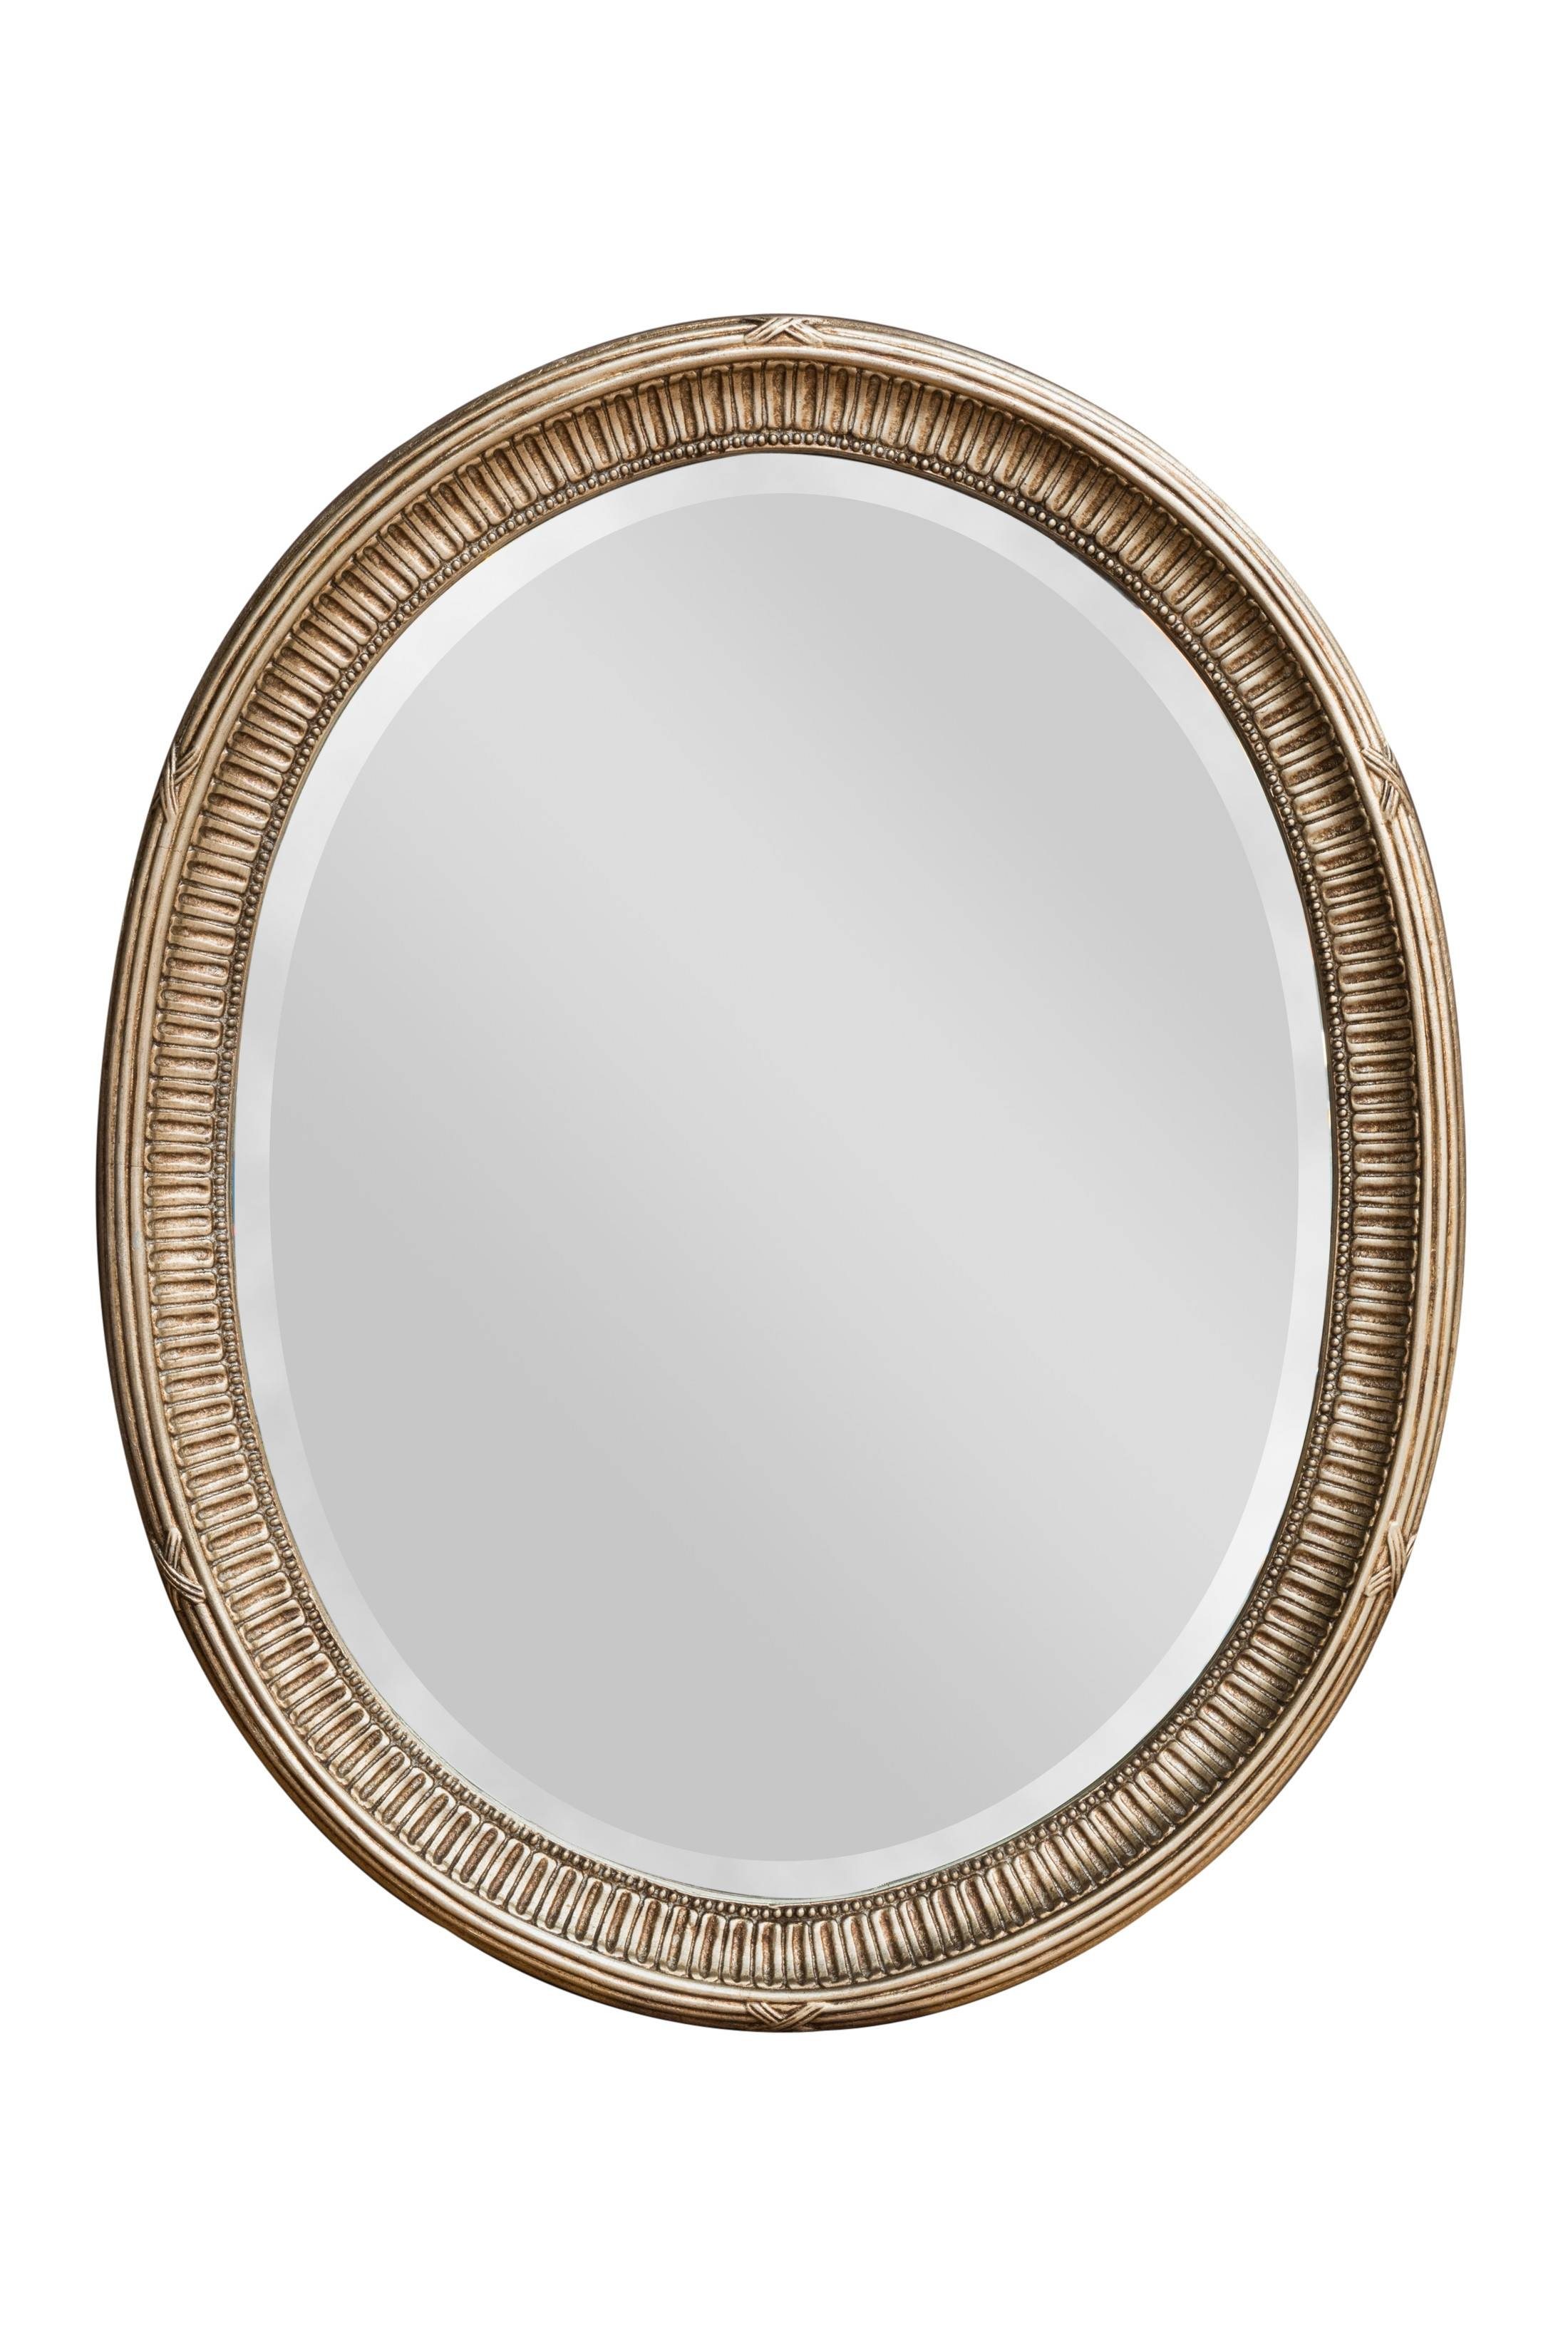 Adam Silver Oval Mirror | Bedroom Mirrors For Sale – Panfili In Silver Oval Mirrors (View 2 of 25)